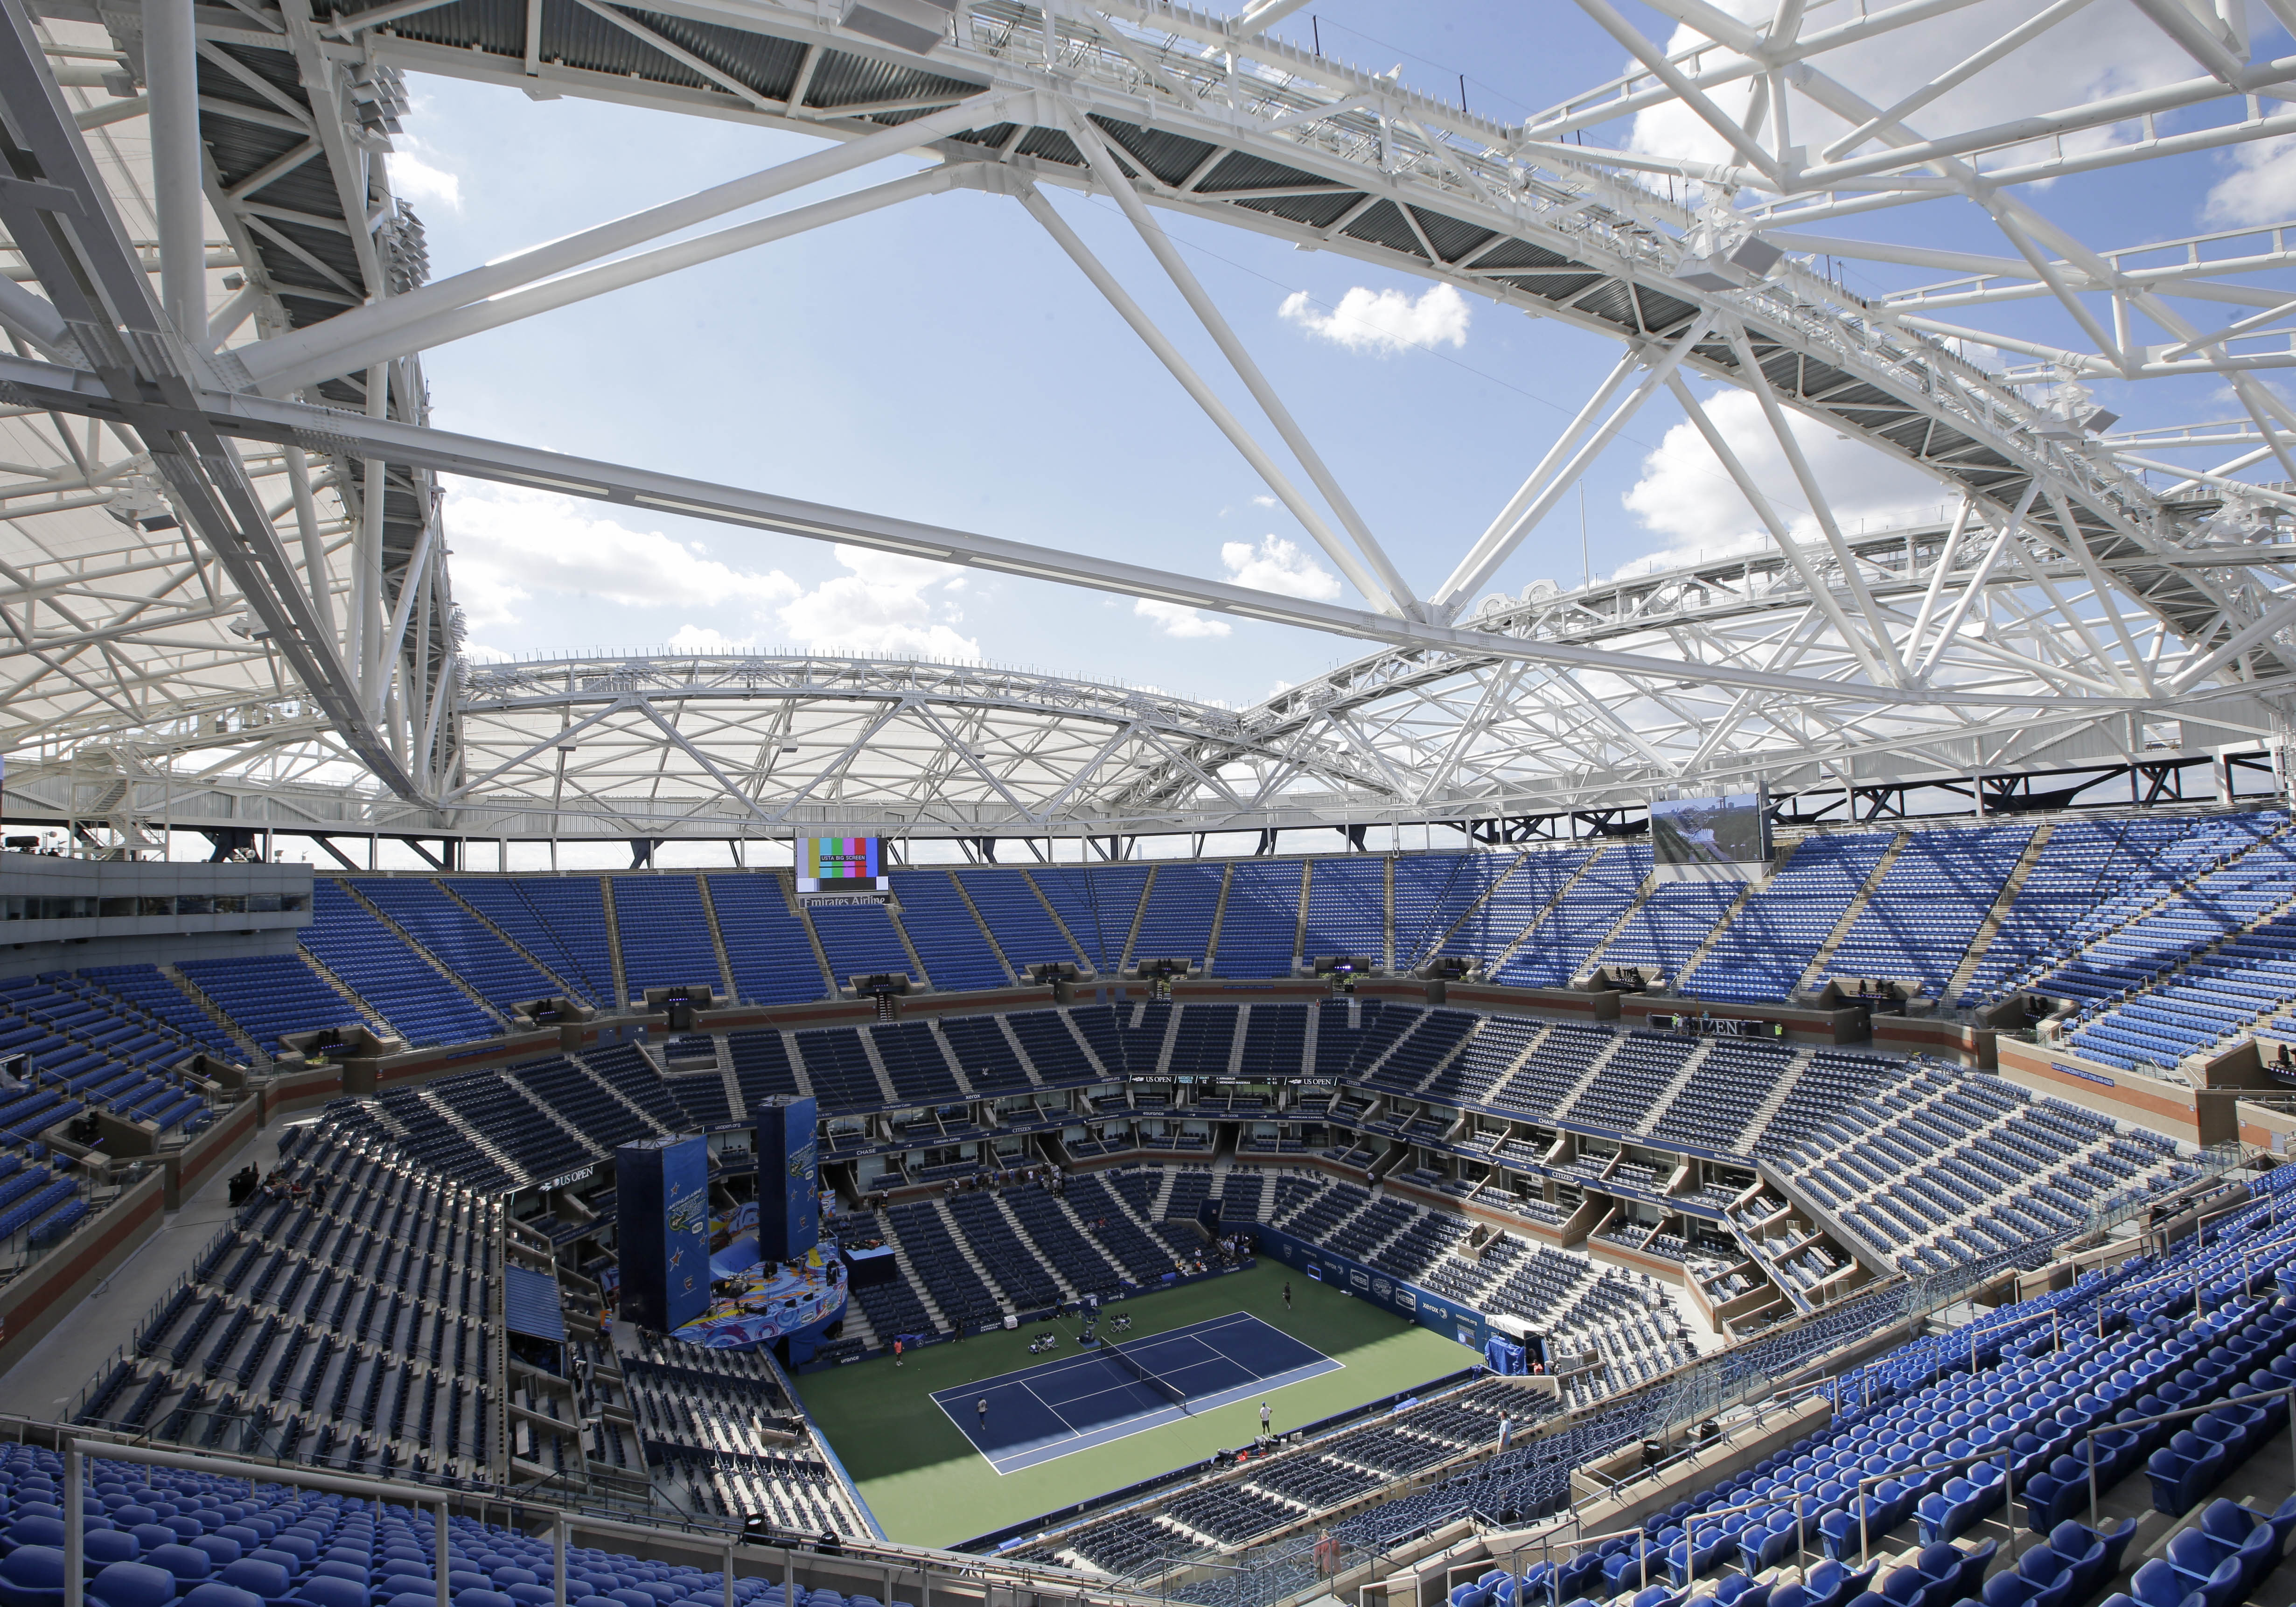 A view from the upper seating section in Arthur Ashe Stadium shows the framework of a retractable roof over the main court at the USTA Billie Jean King National Tennis Center in New York, Thursday, Aug. 27, 2015, home to the U.S. Open tennis tournament. A